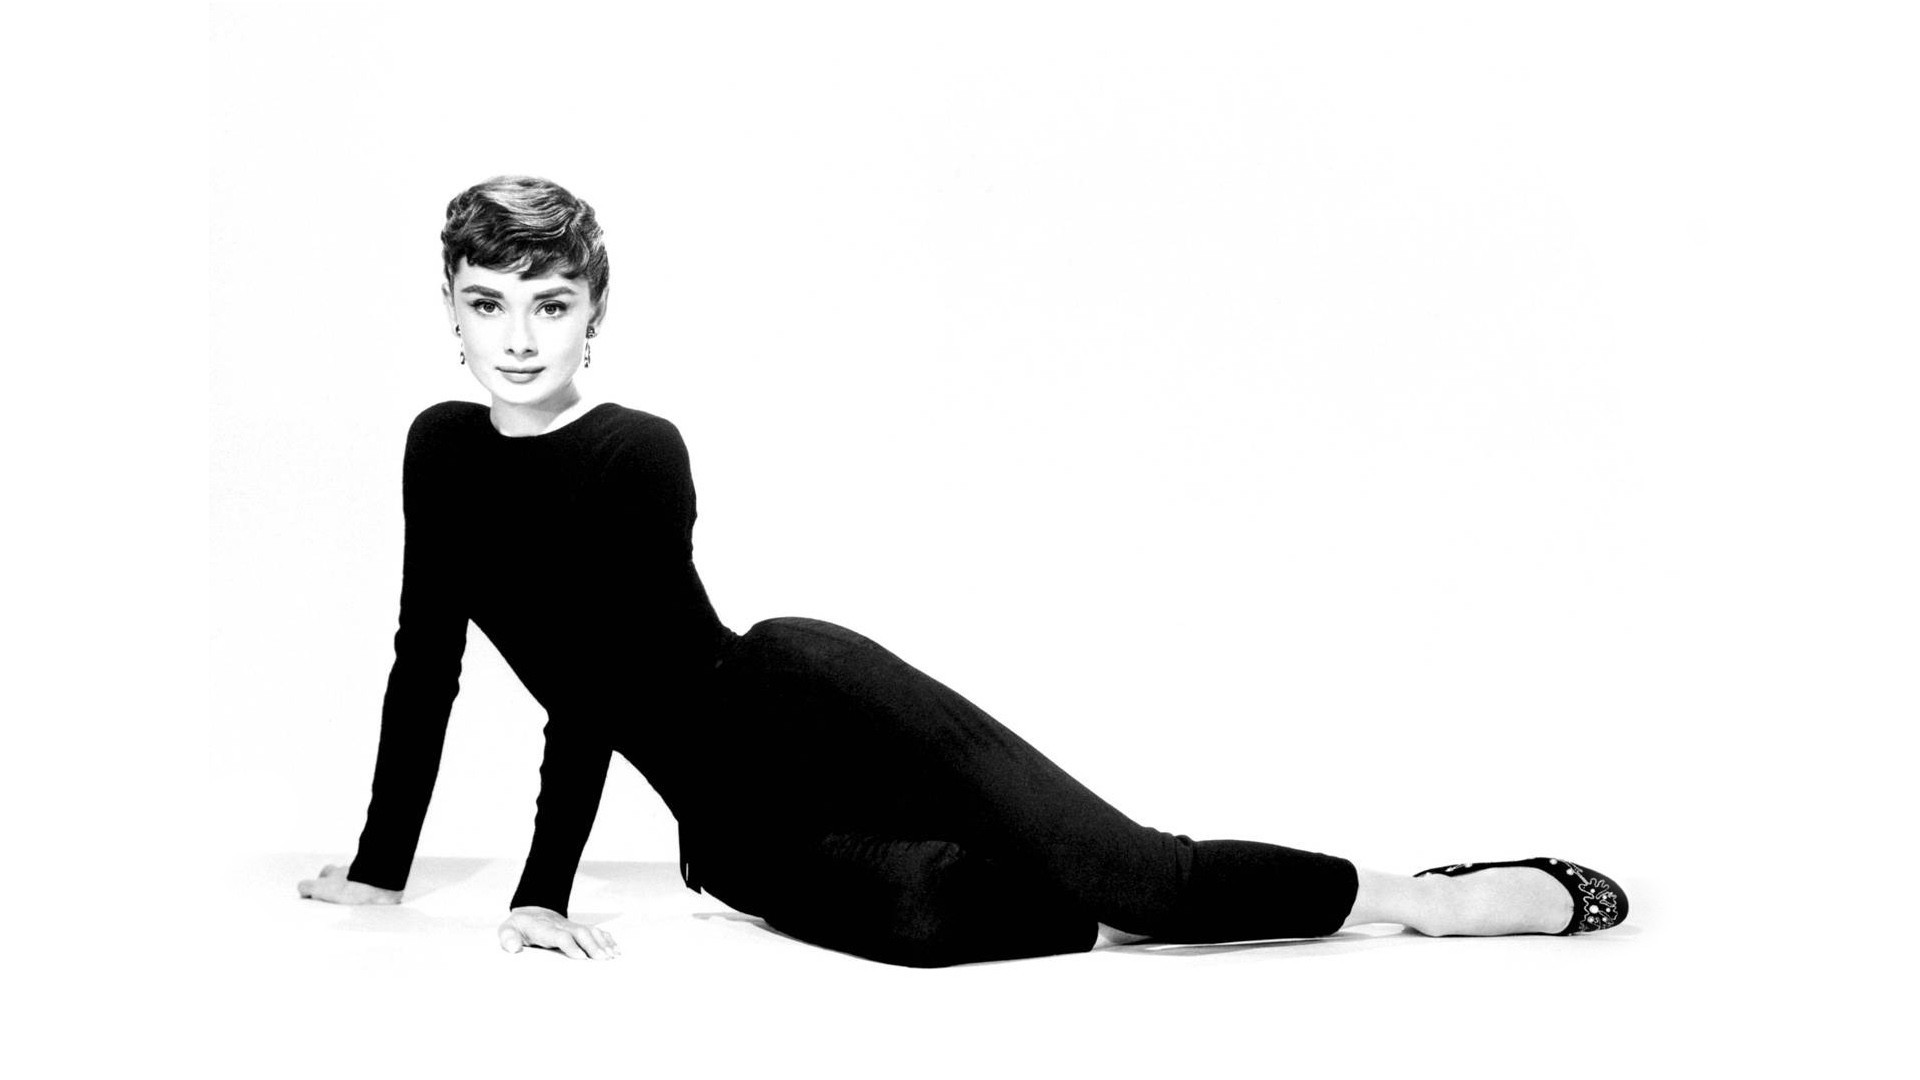 Audrey Hepburn Background   Wallpaper High Definition High Quality 1920x1080